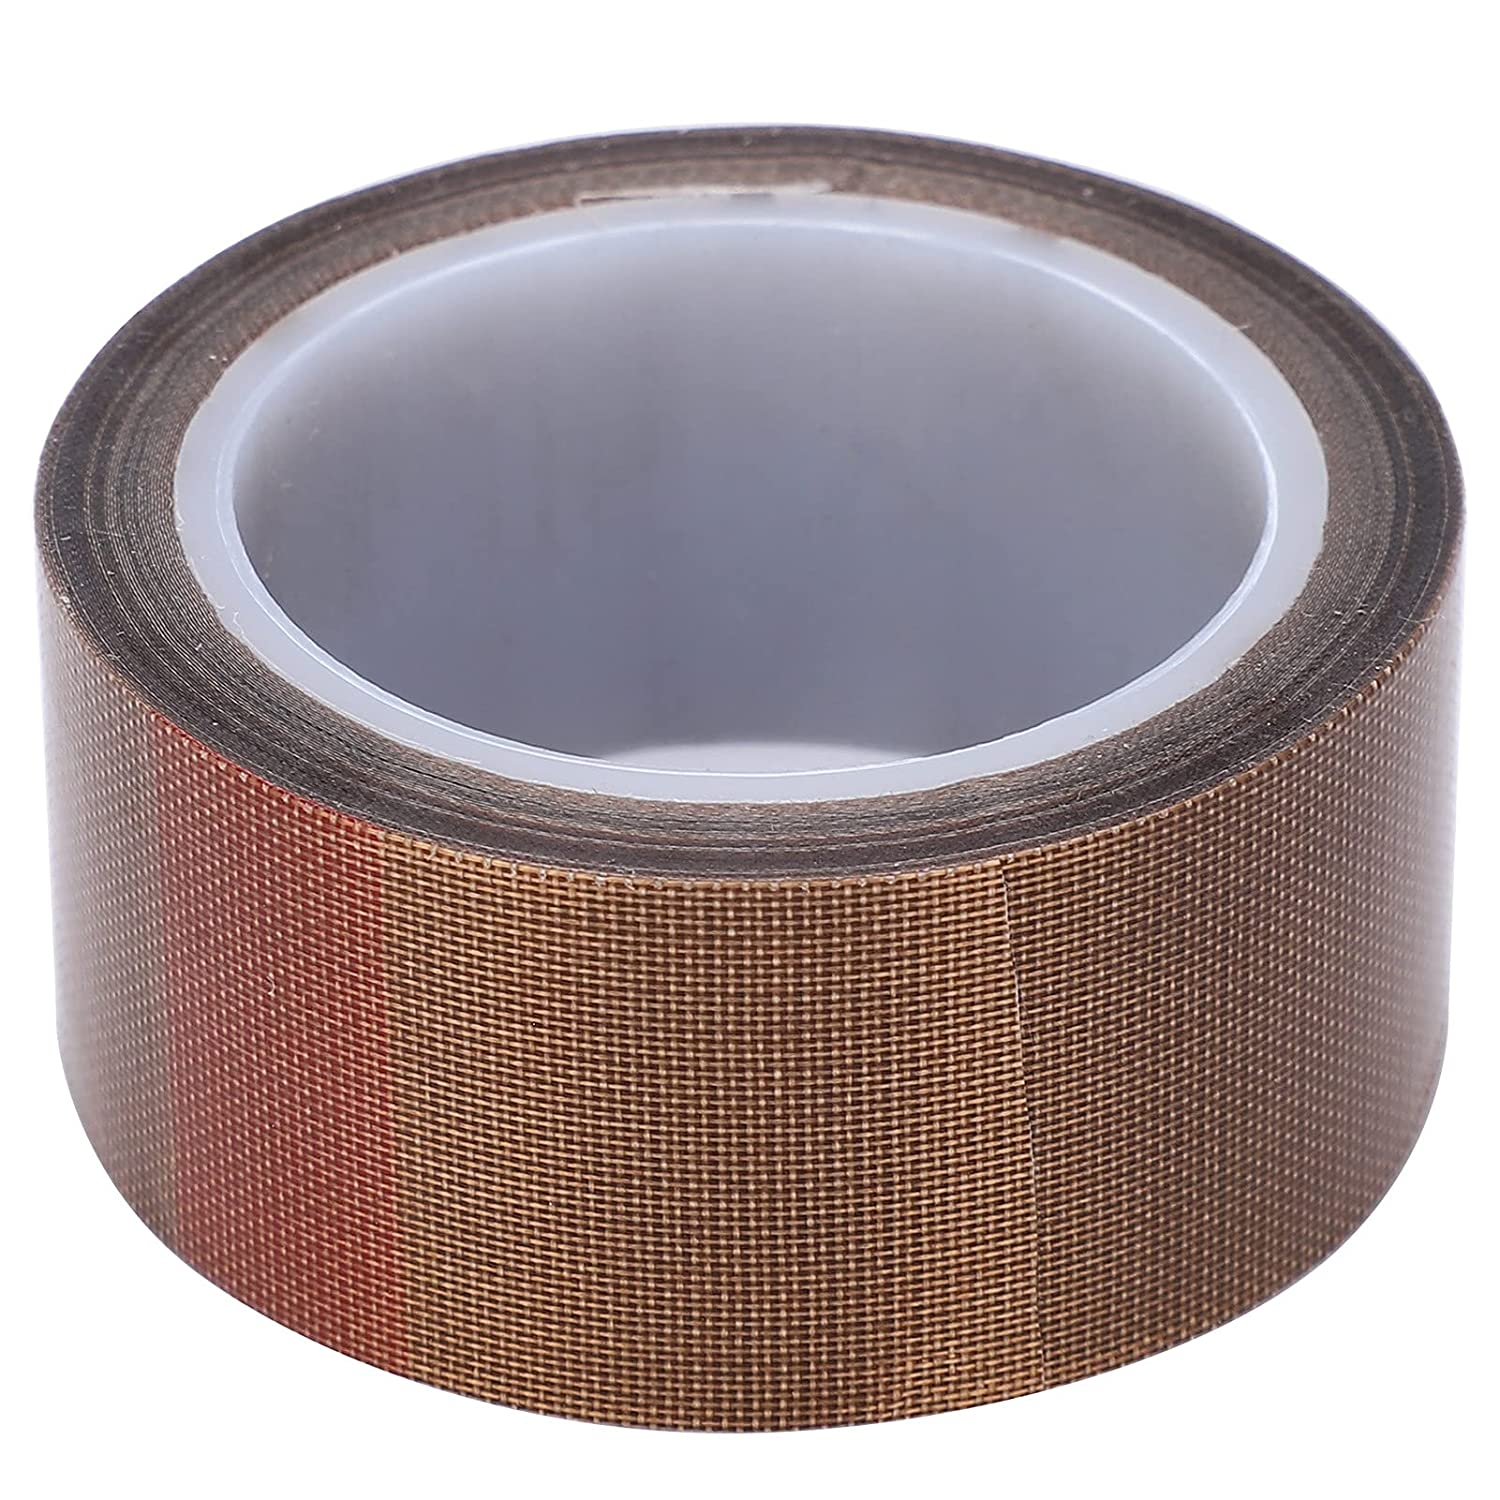 Sealant High quality new Tape Popular product High Temperature for High‑Tempera Practical